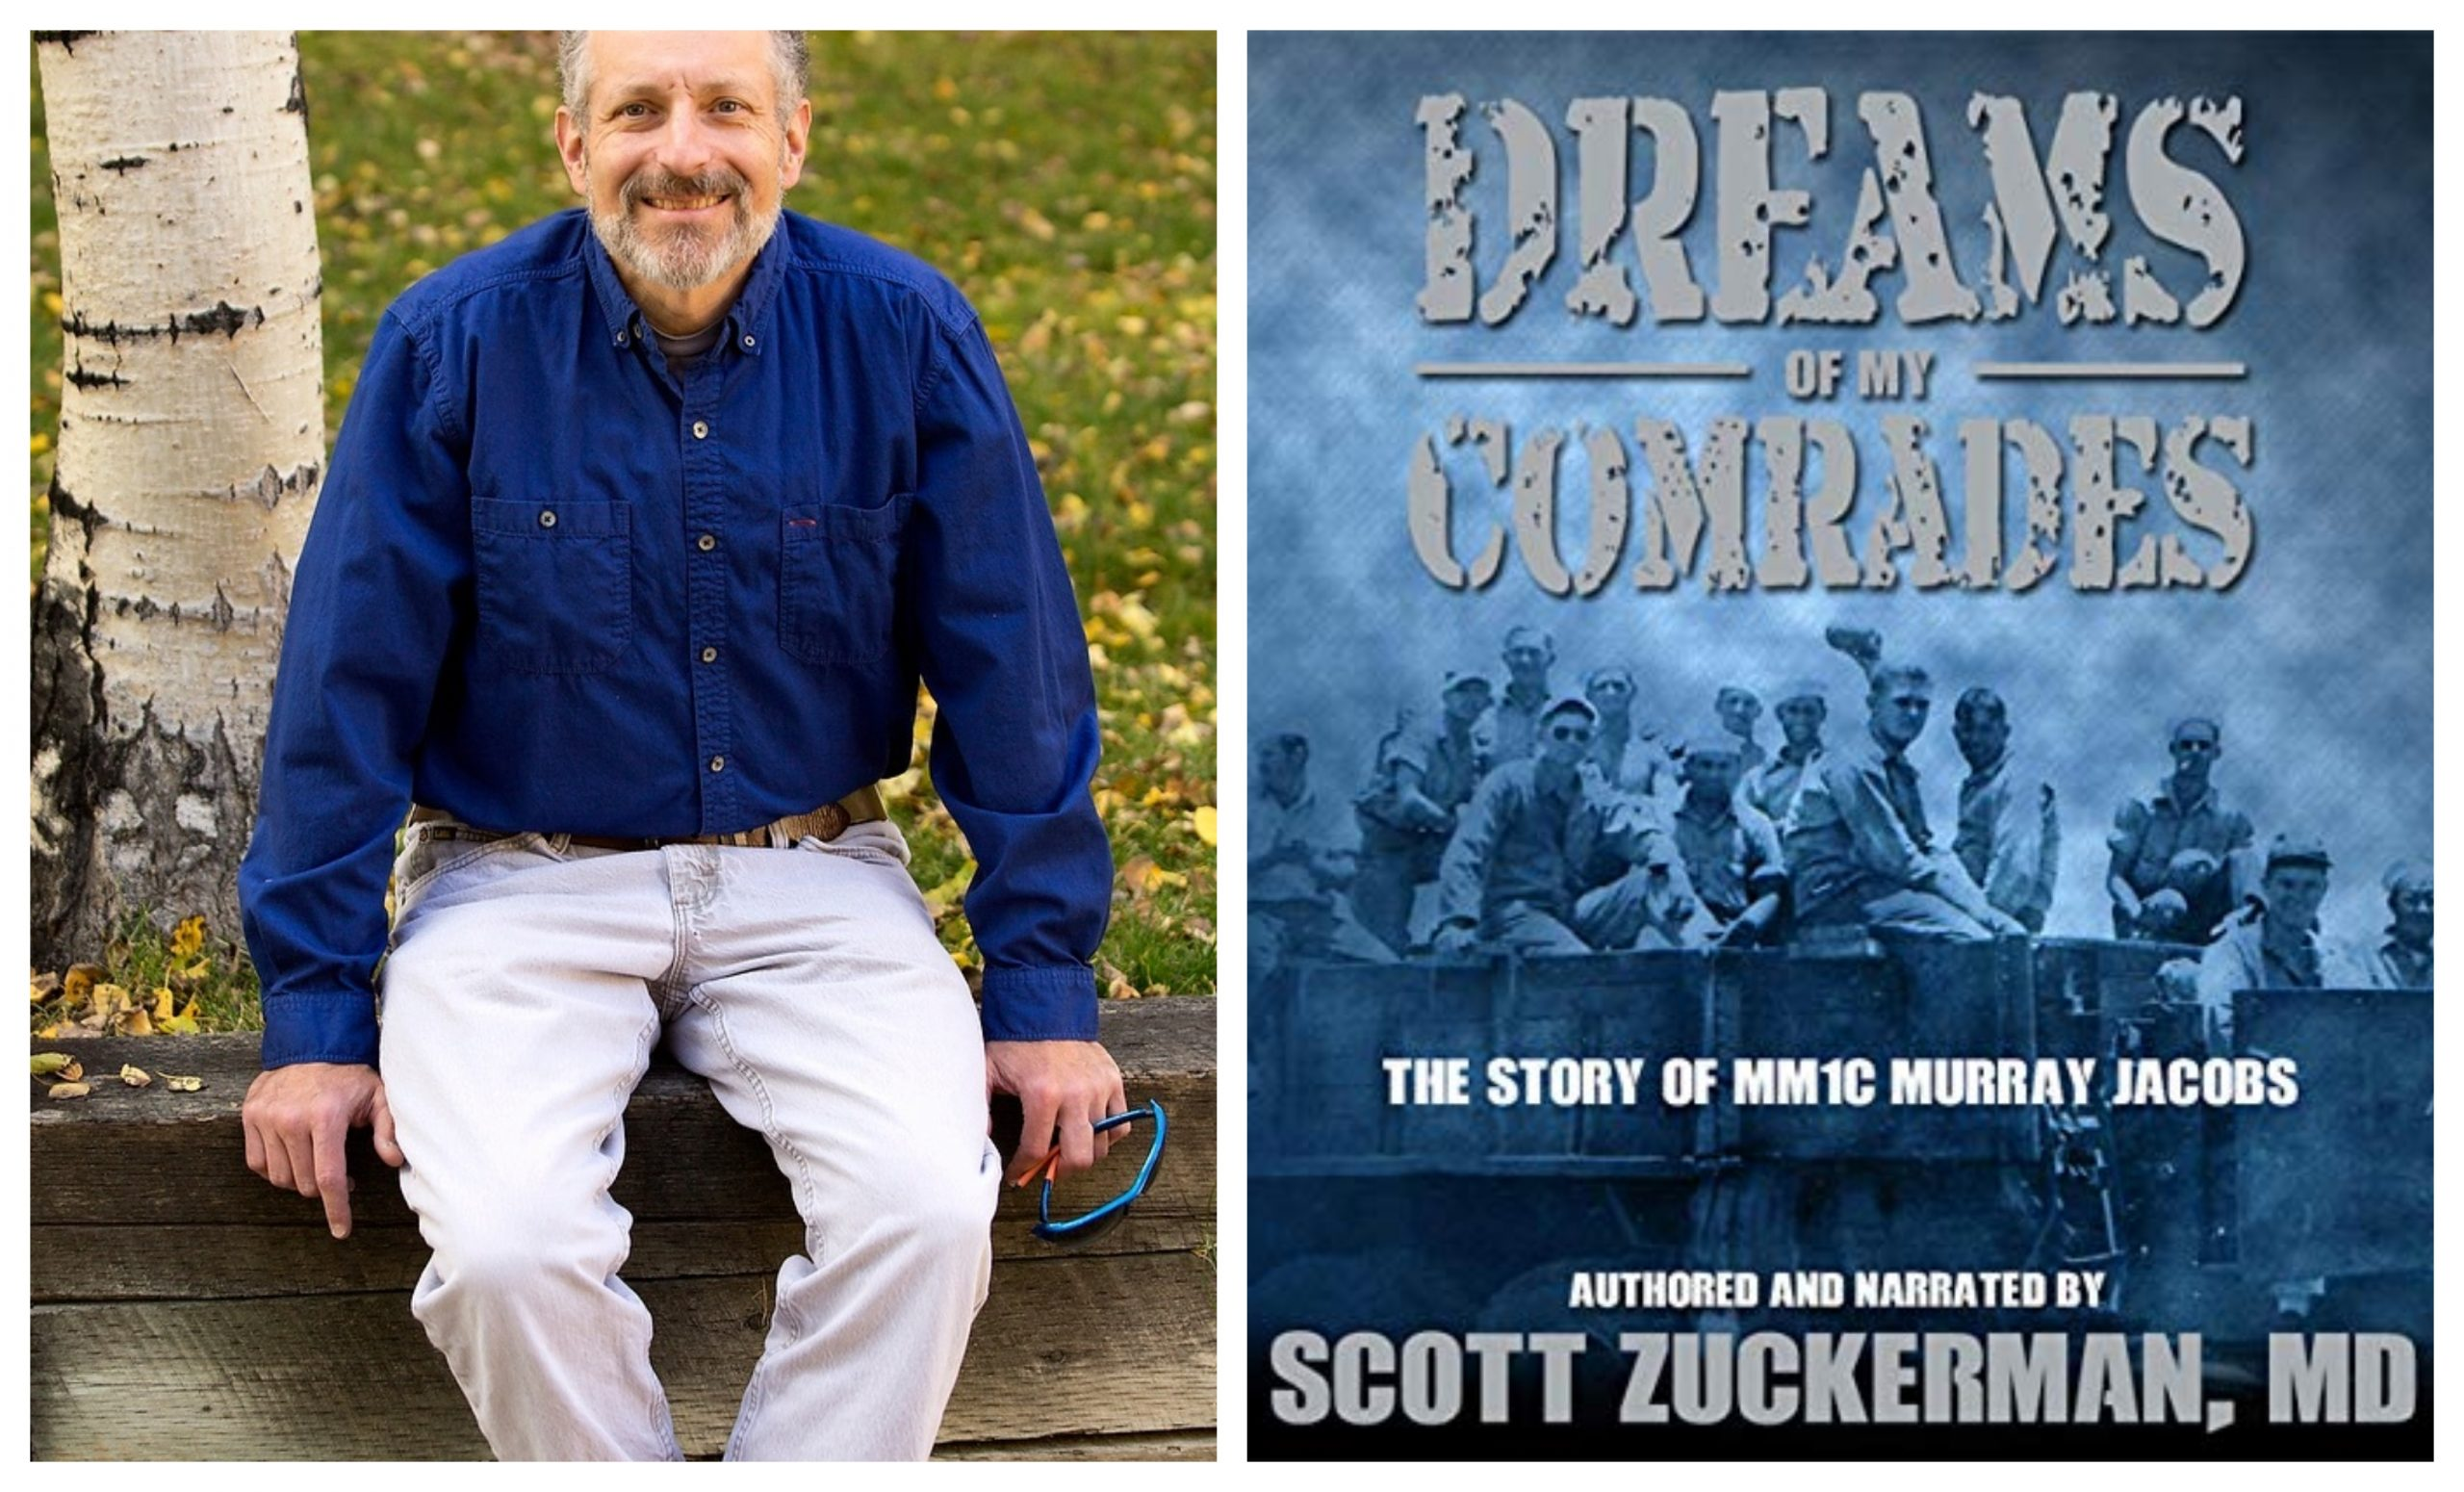 Tormented by his wartime experiences, former Navy Seabee Murray Jacobs had never revealed his story to anyone before Dreams of My Comrades.